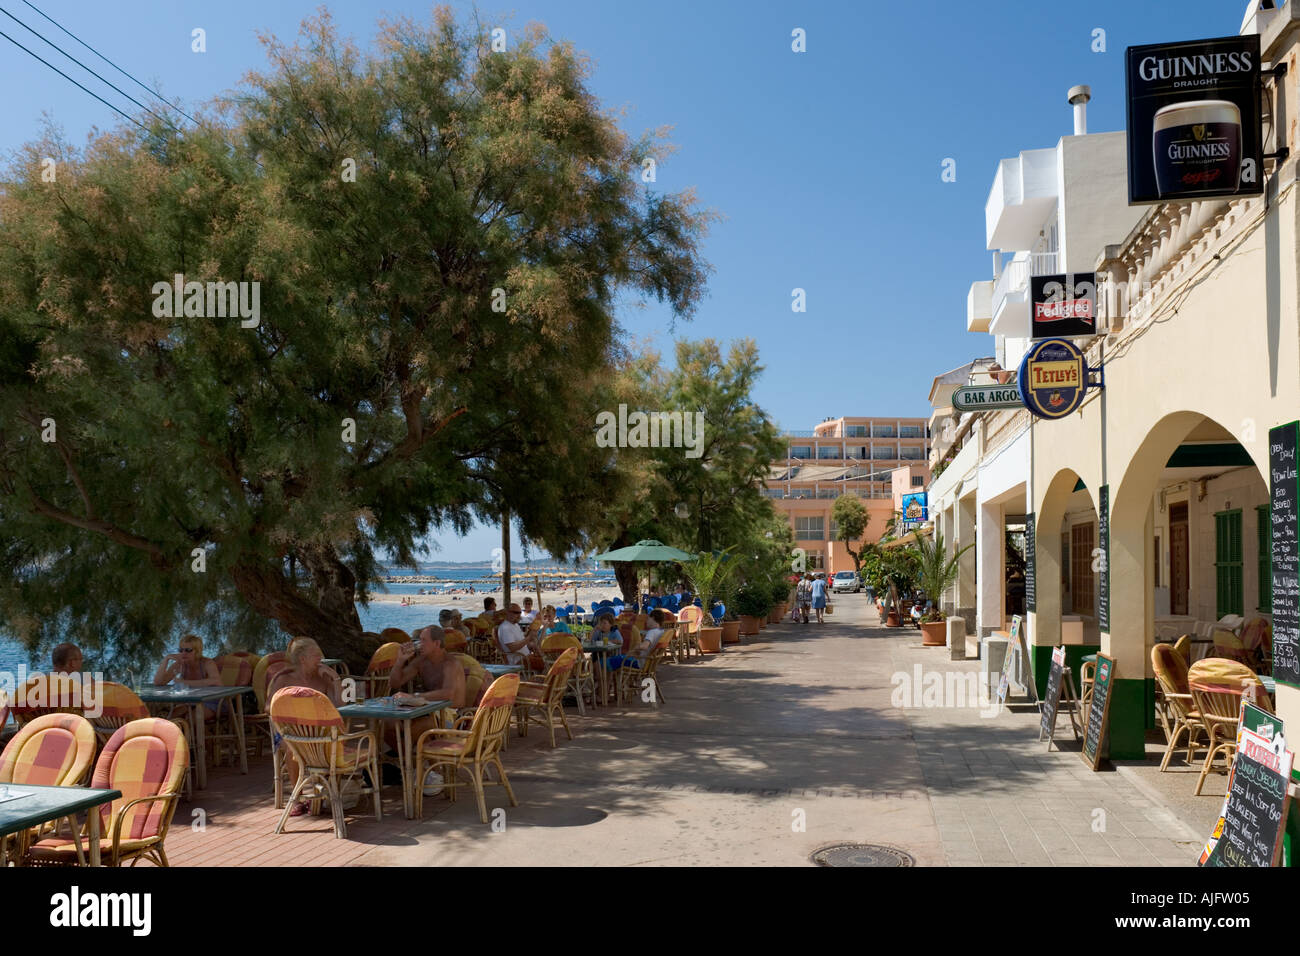 Beachfront Restaurant, Cala Bona, East Coast, Mallorca, Spain - Stock Image